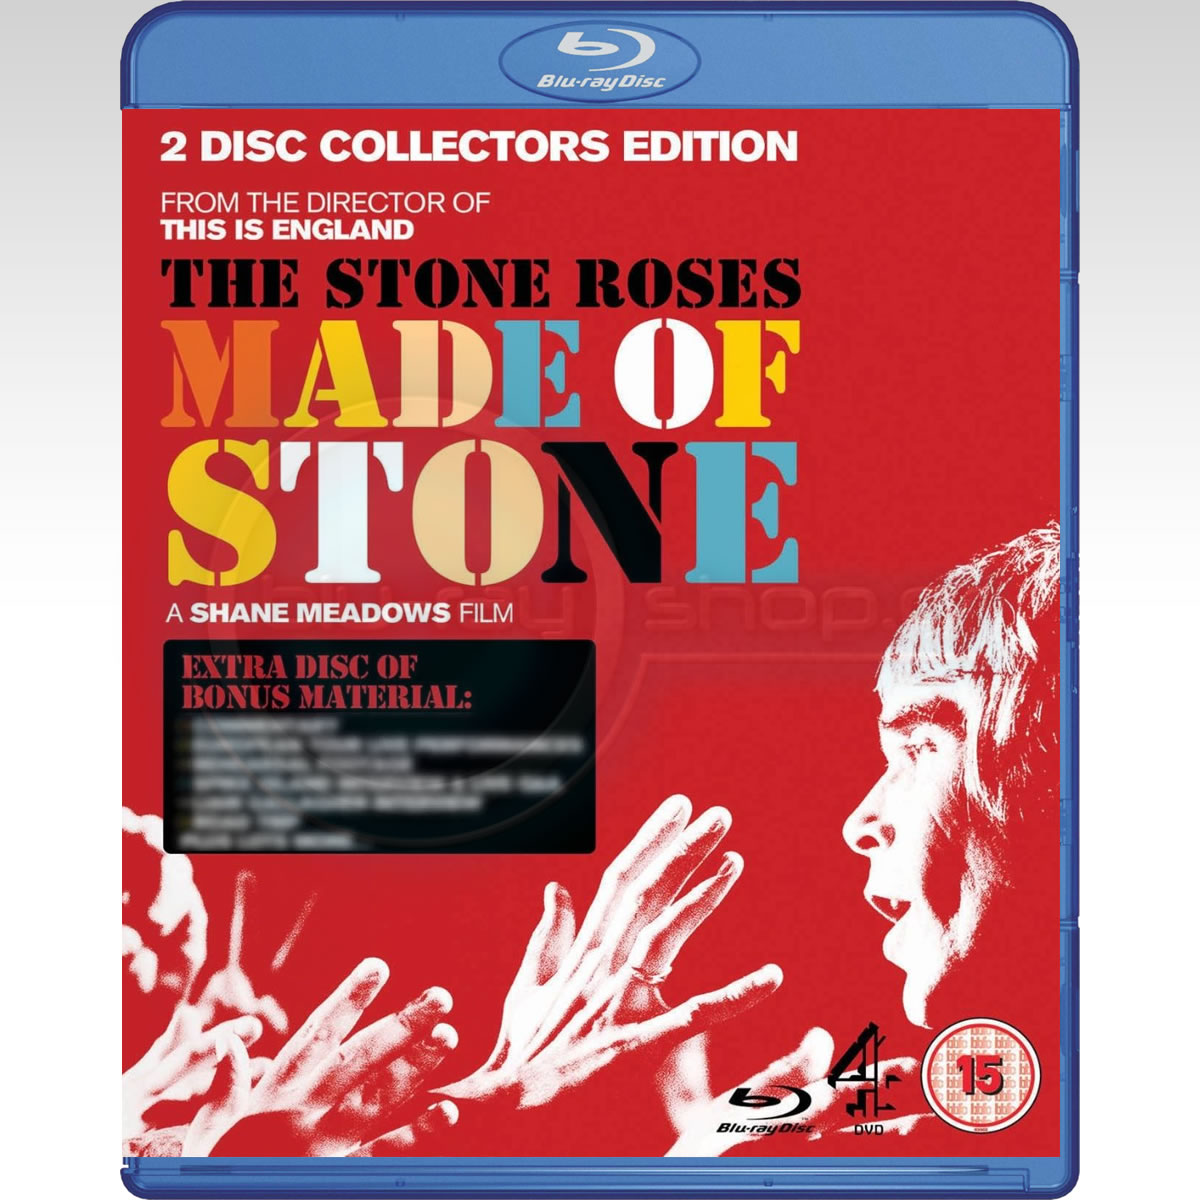 THE STONE ROSES: MADE OF STONE - 2 DISC COLLECTOR'S EDITION (2 BLU-RAYs)